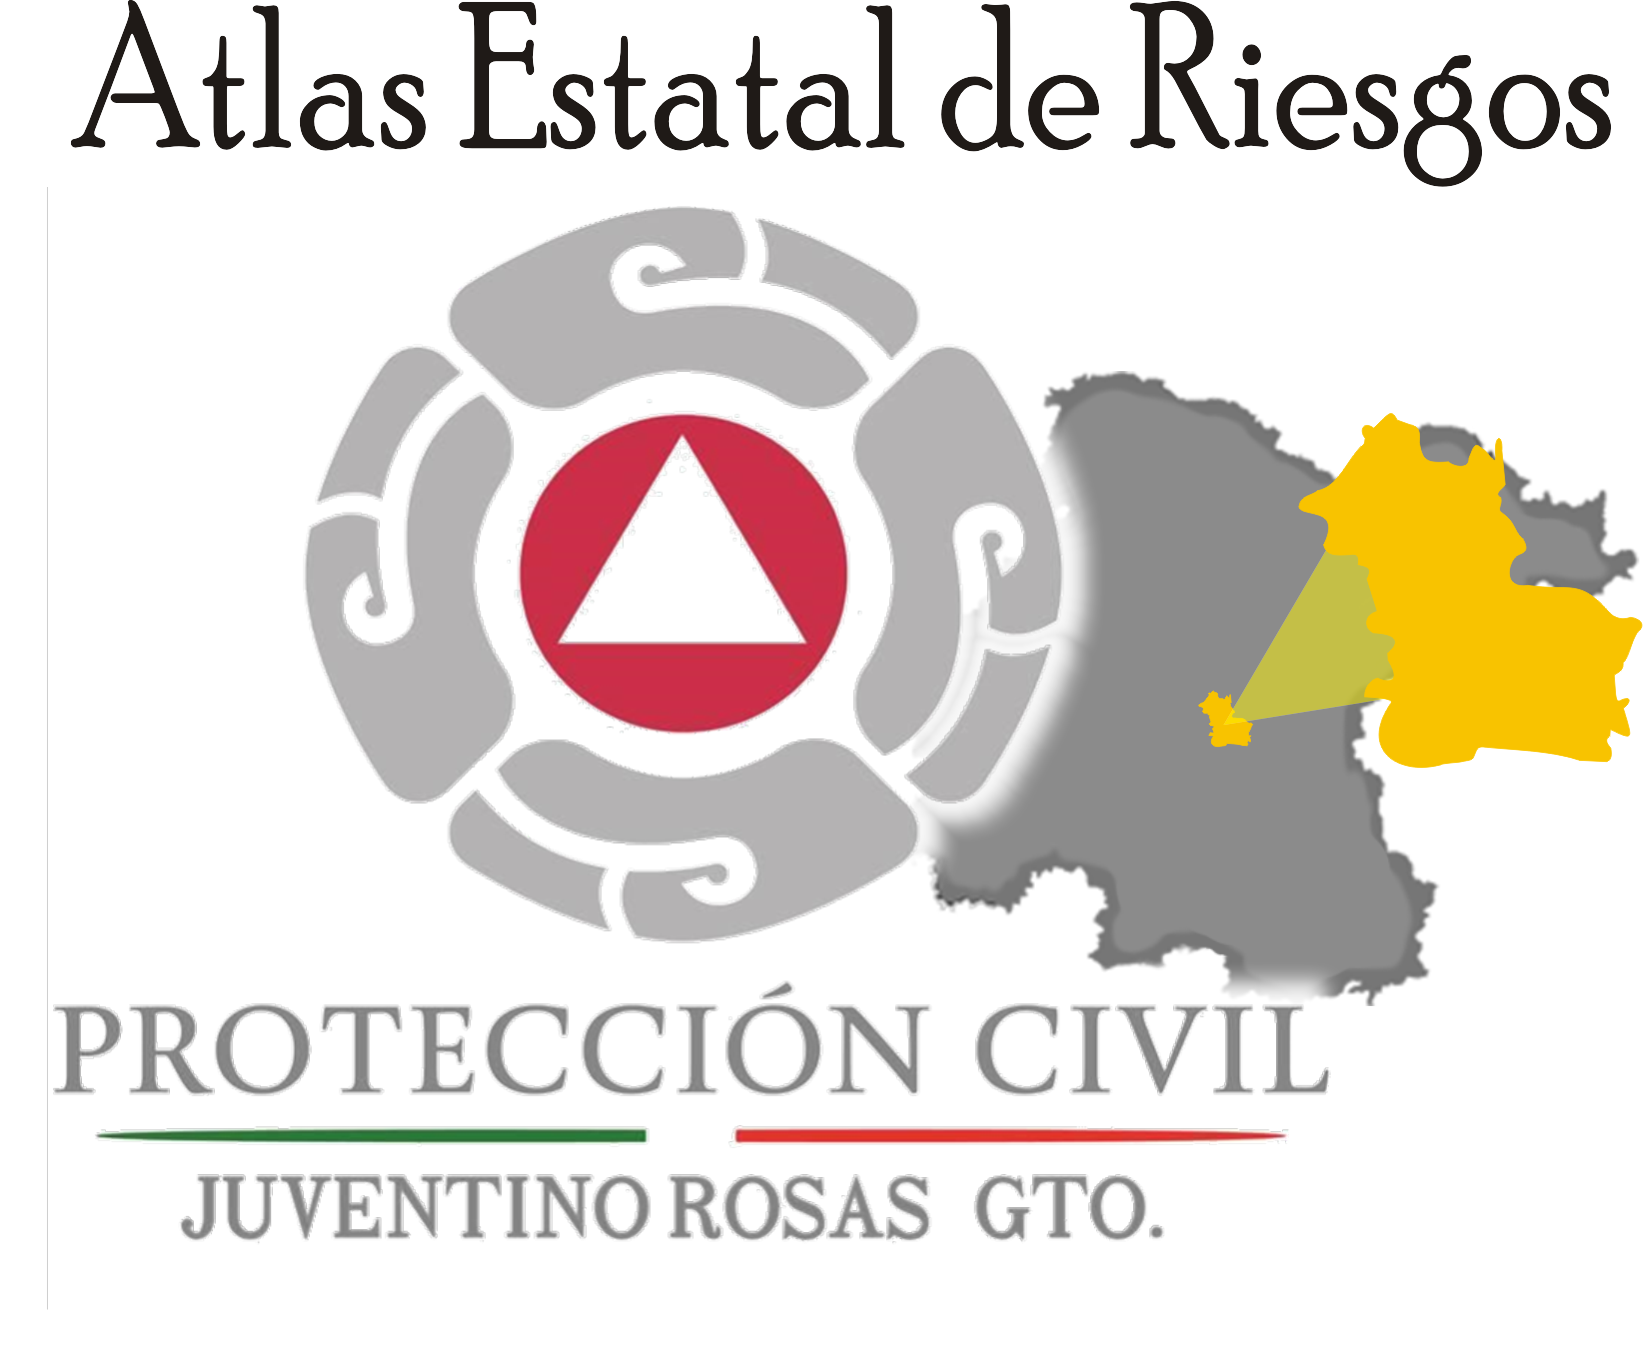 Atlas Estatal de Riesgos